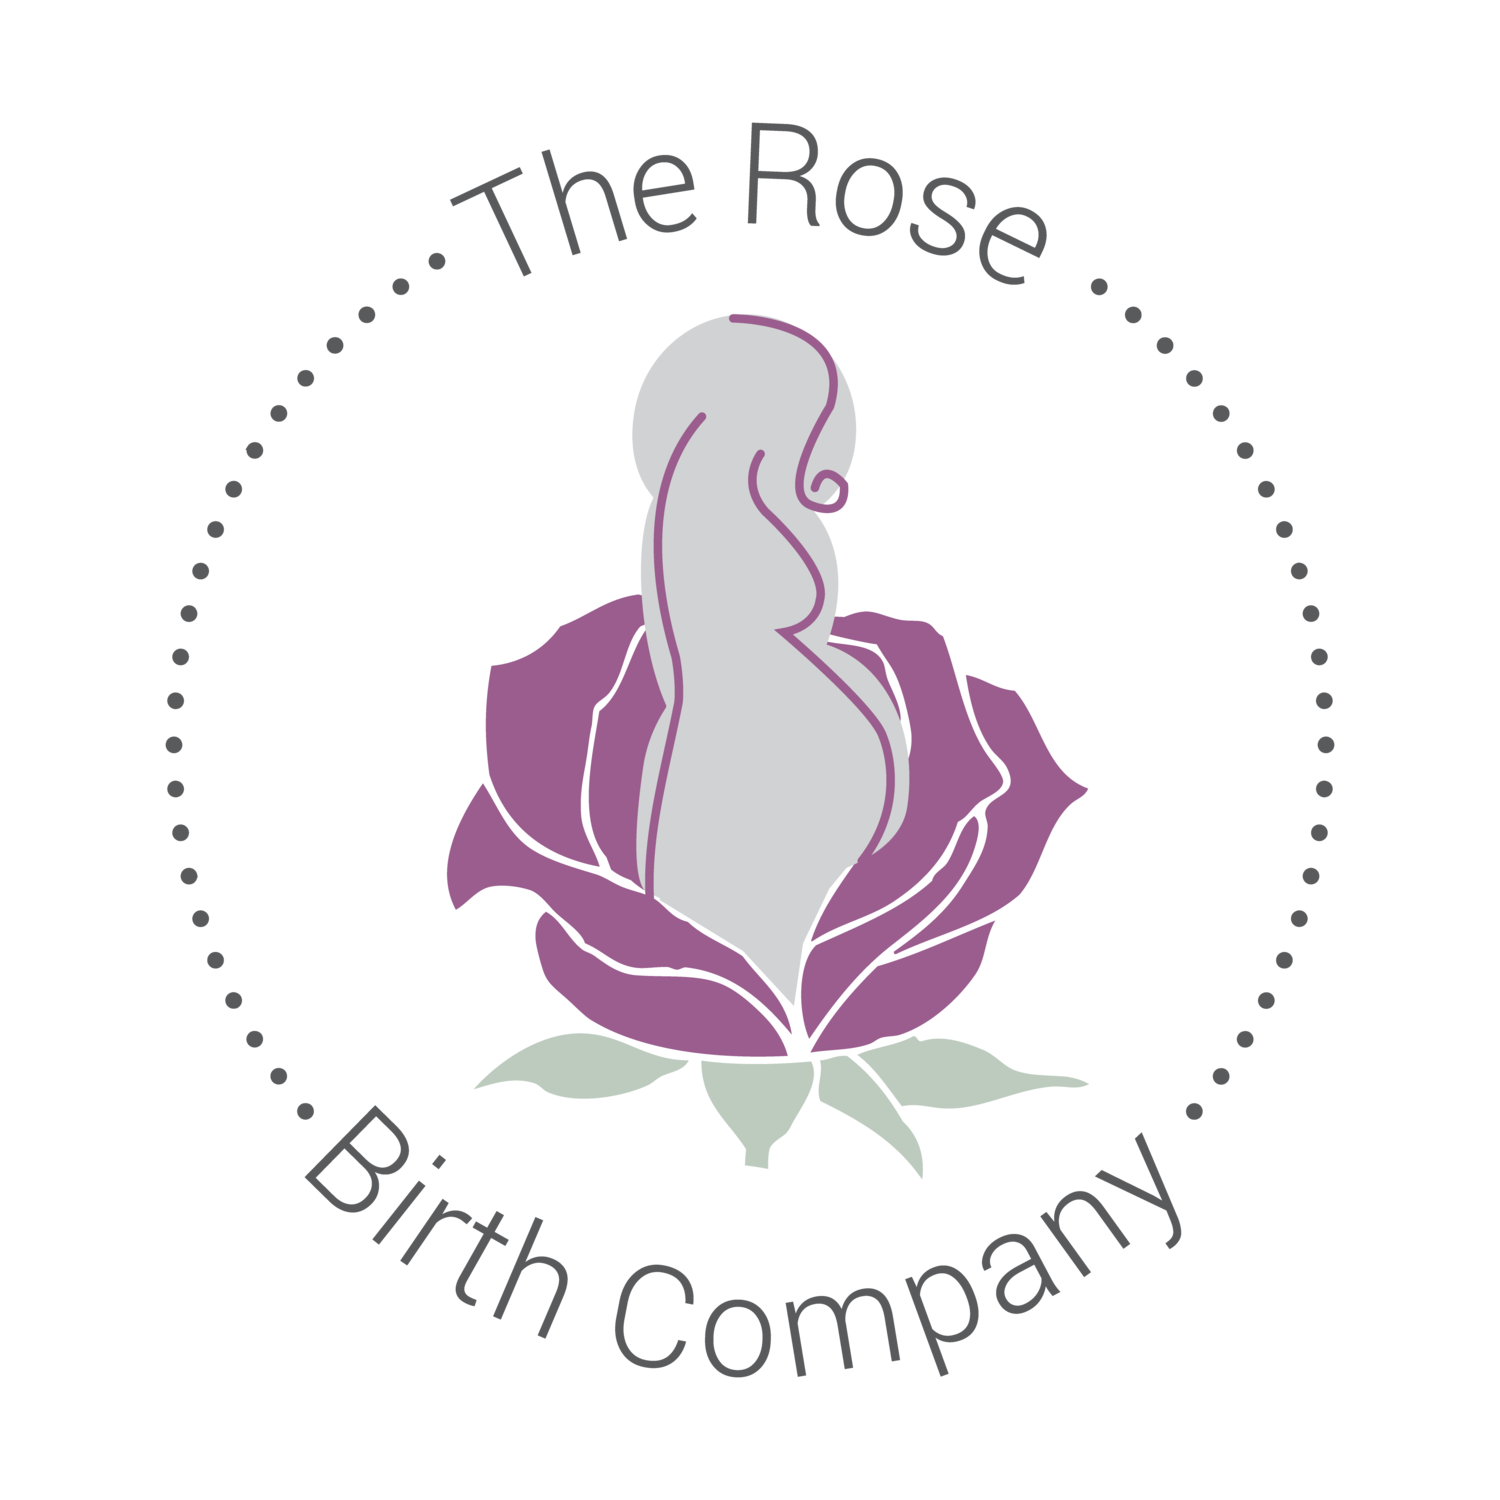 The Rose Birth Company